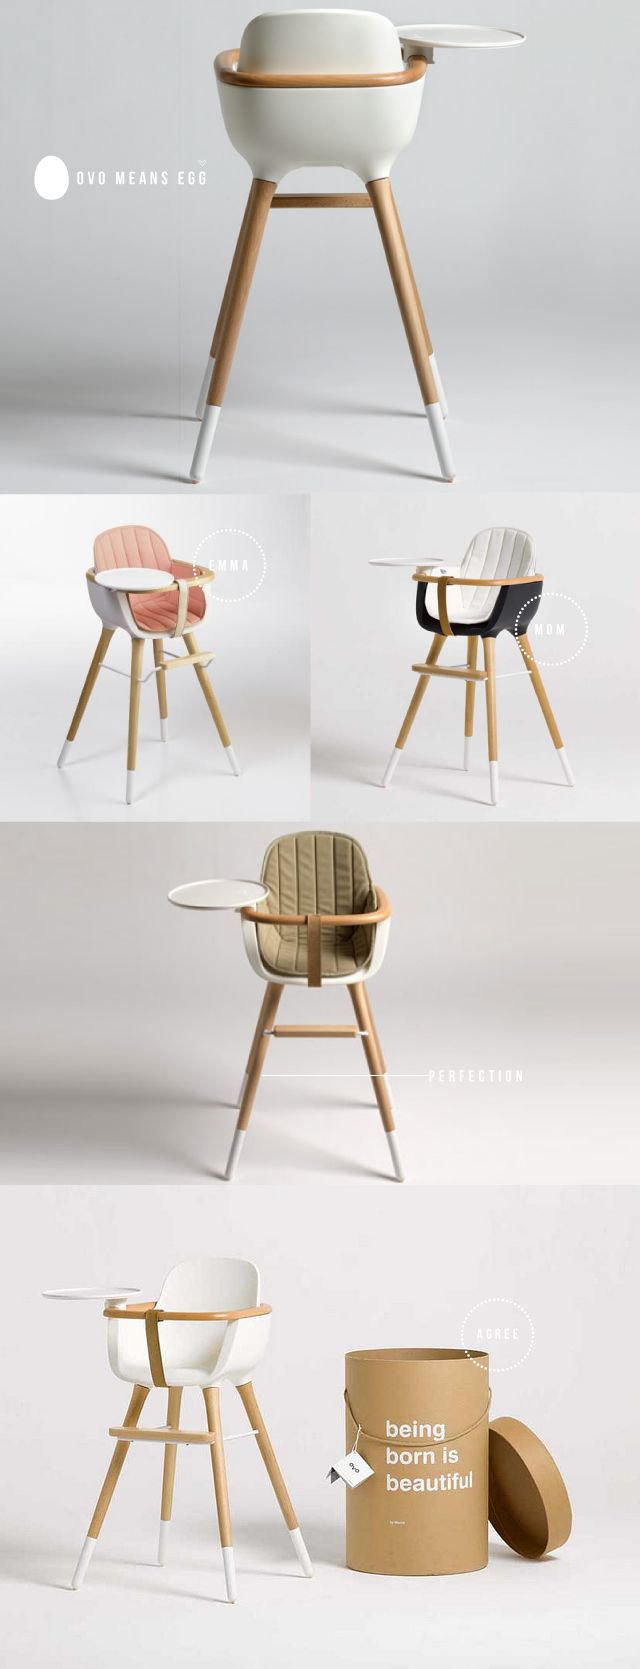 """Ovo"" is a high chair for babys 